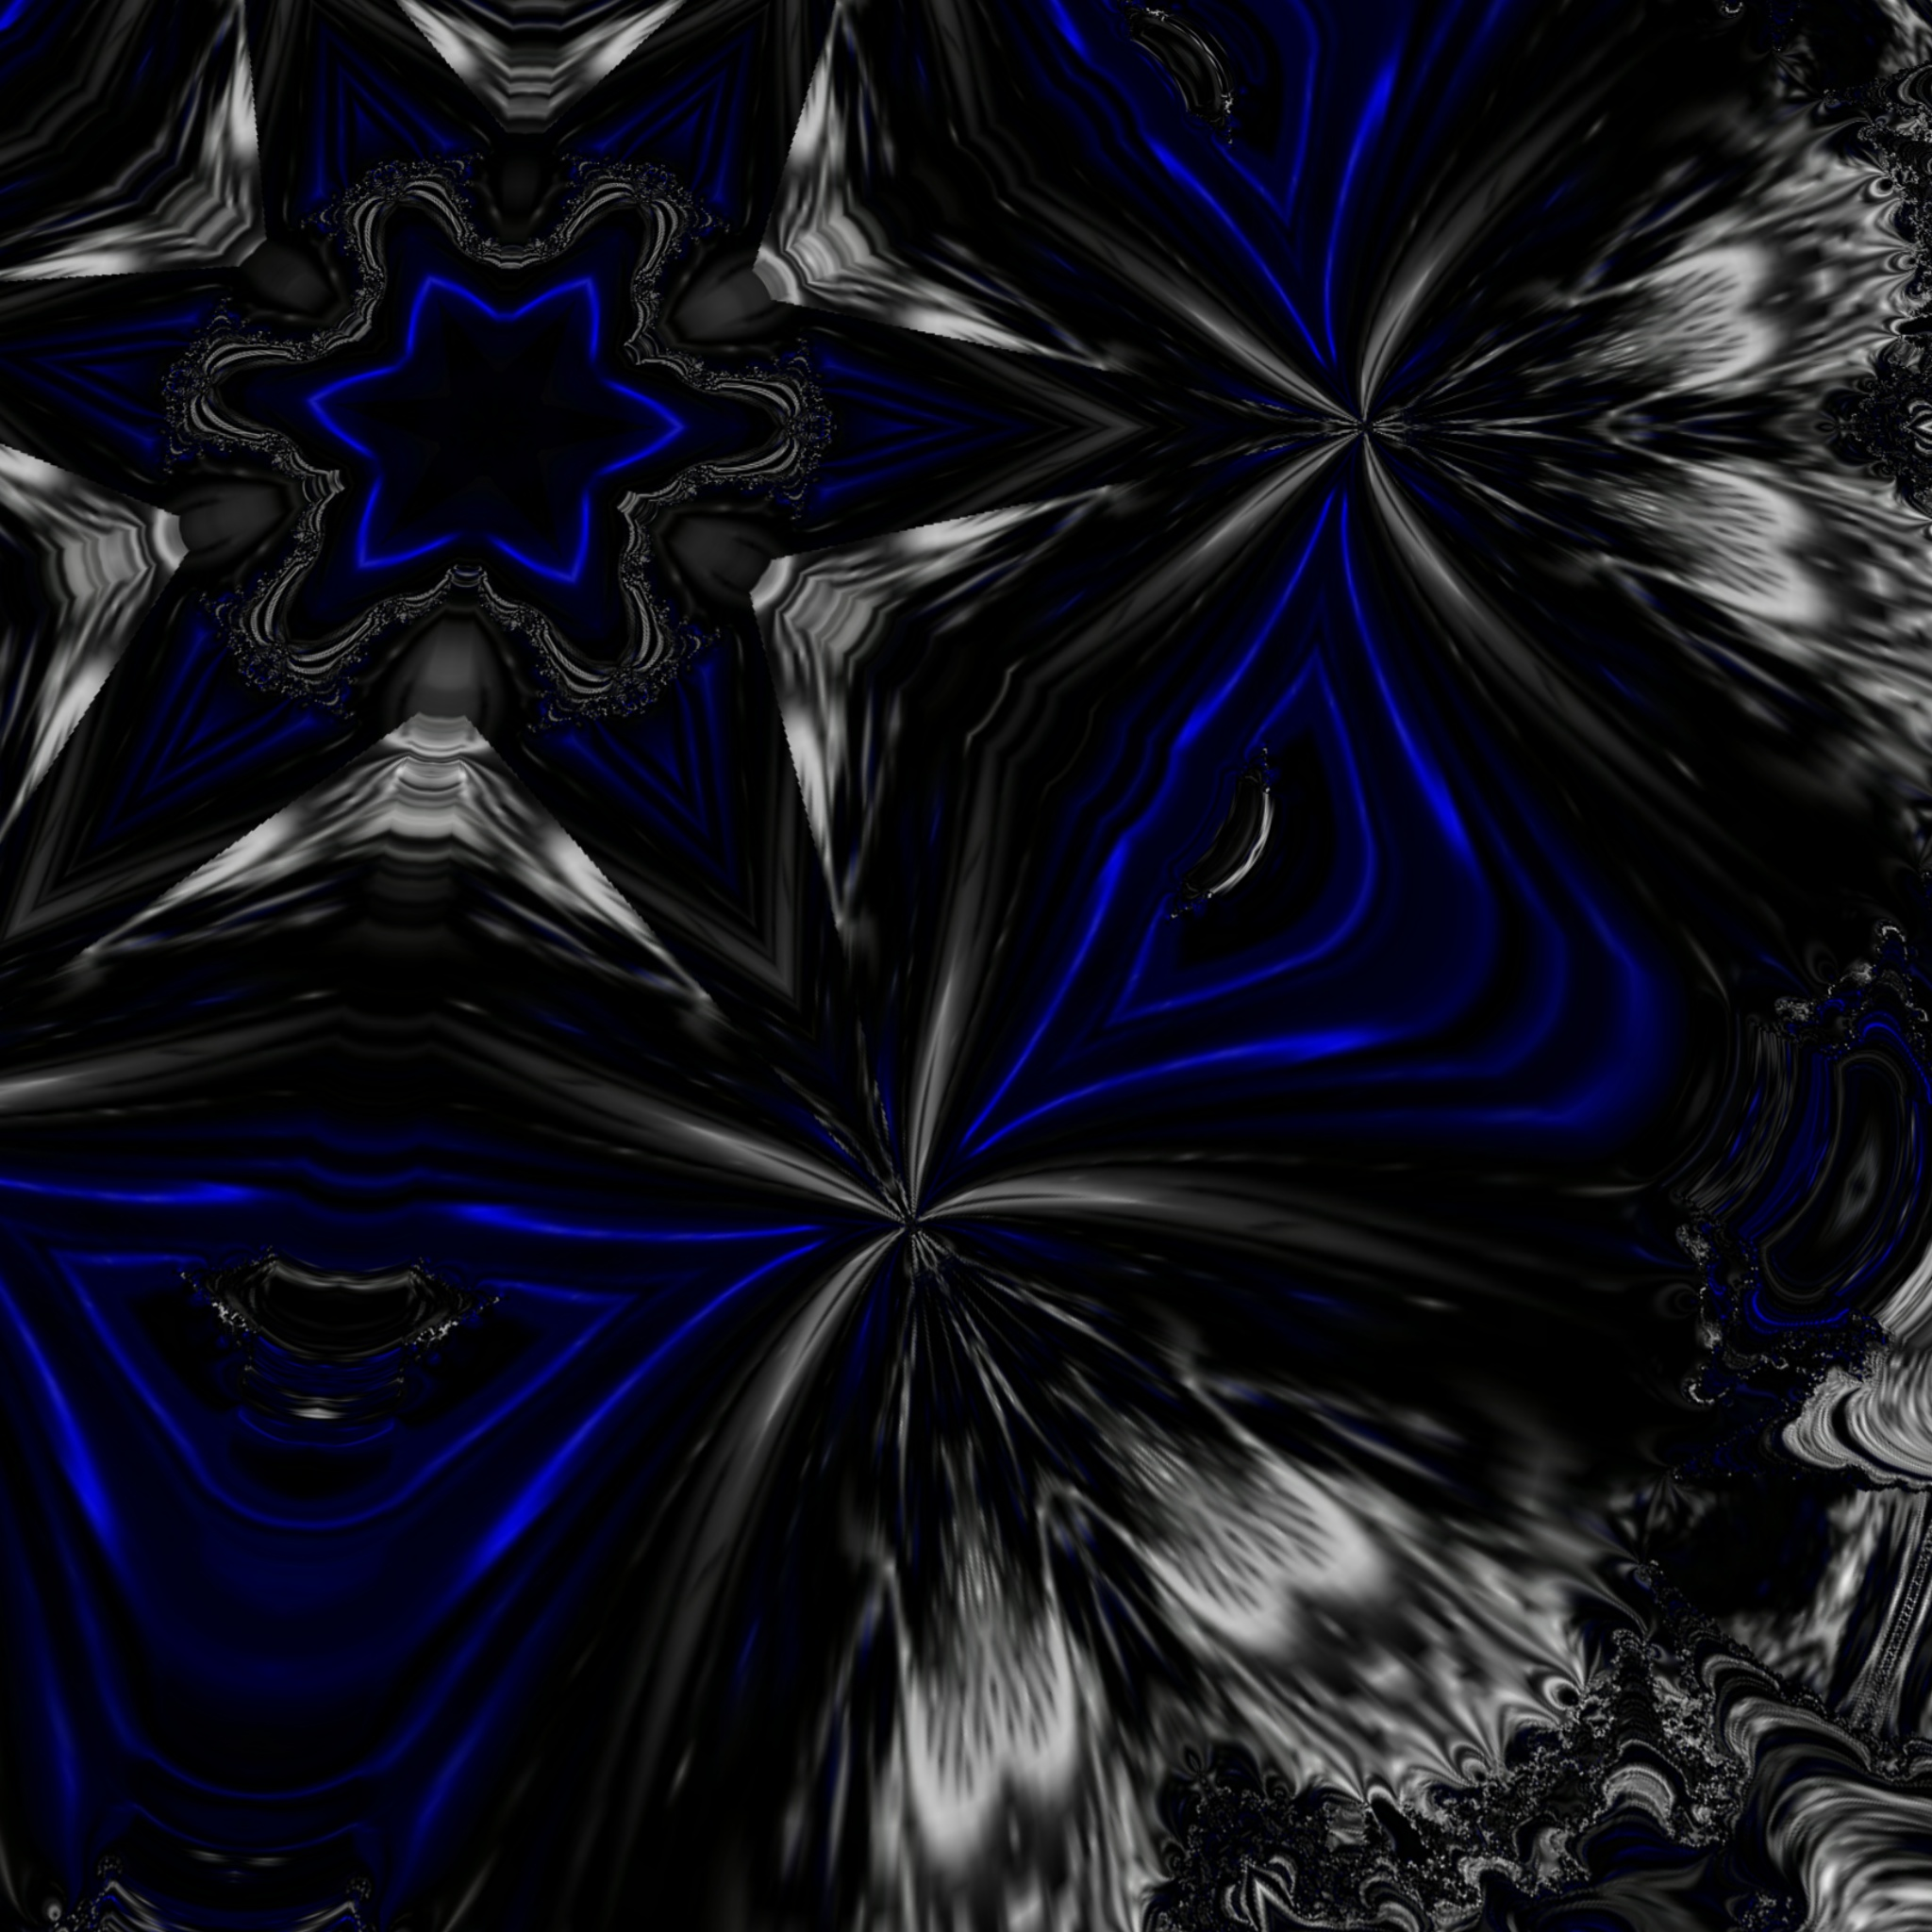 June, 18th 2021 Abstract [10